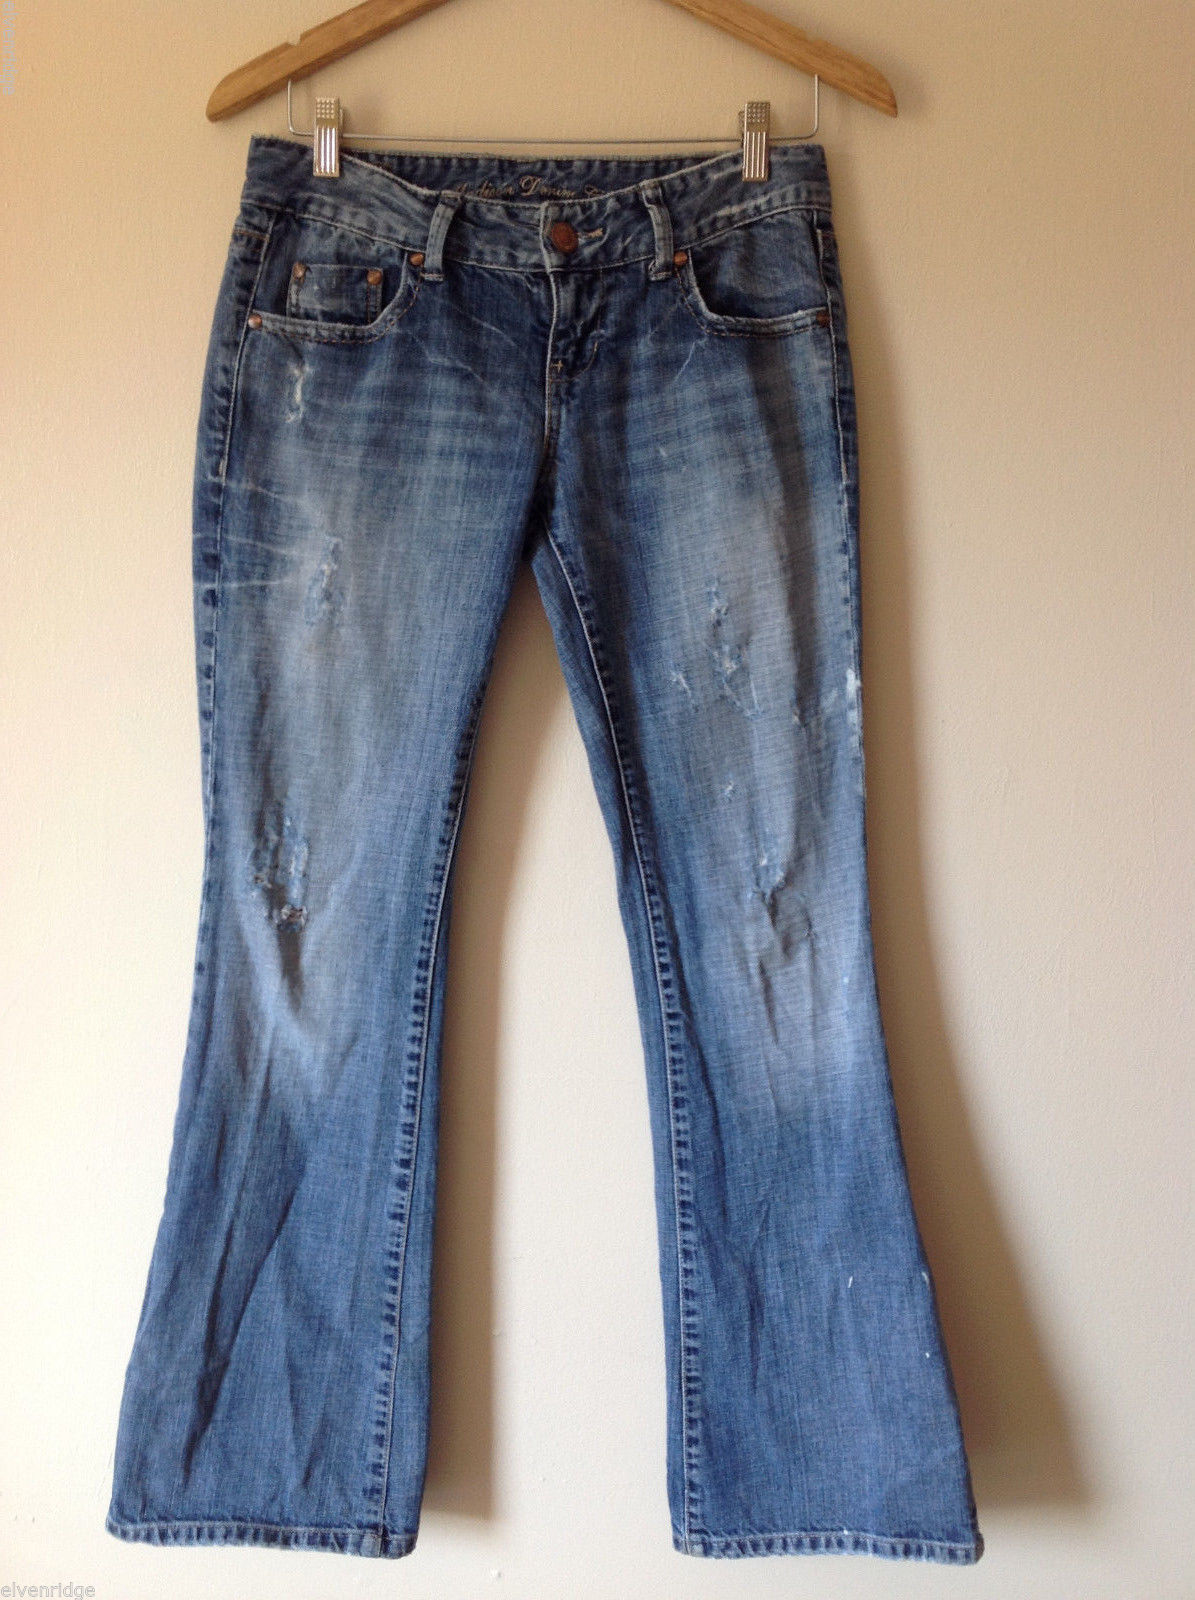 Madison Denim Co. Womens' Size 3/4 Distressed Destroyed Flared Jeans Pants